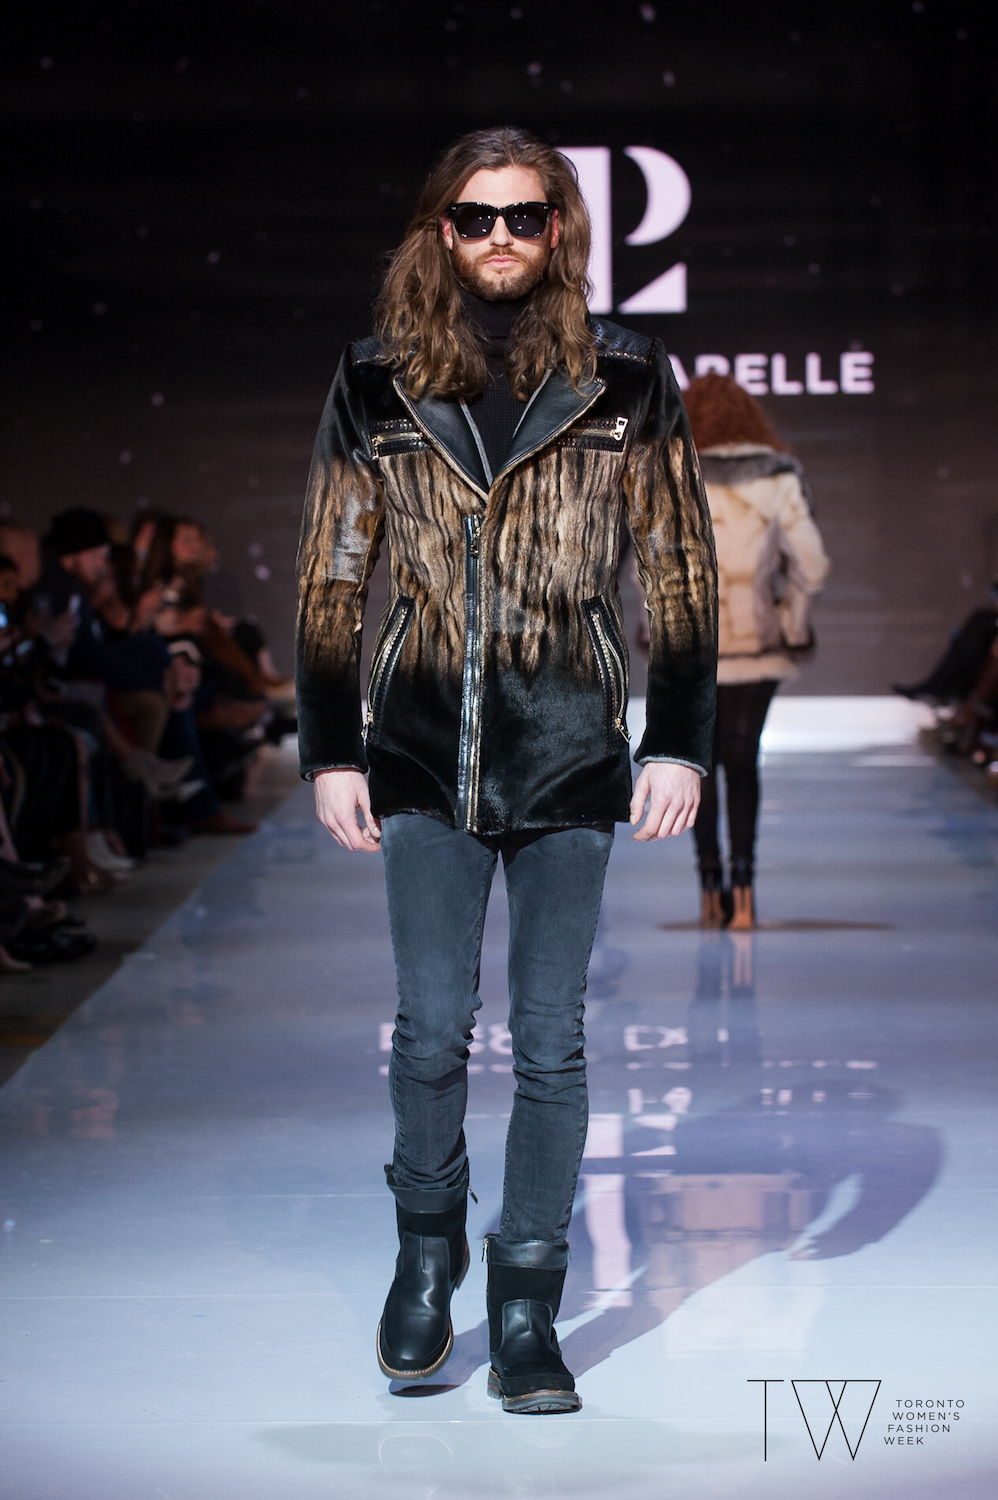 pascal_labelle-twfw-toronto-womens-fashion-week-photo-credit-che-rosales-mens-look-2.jpg